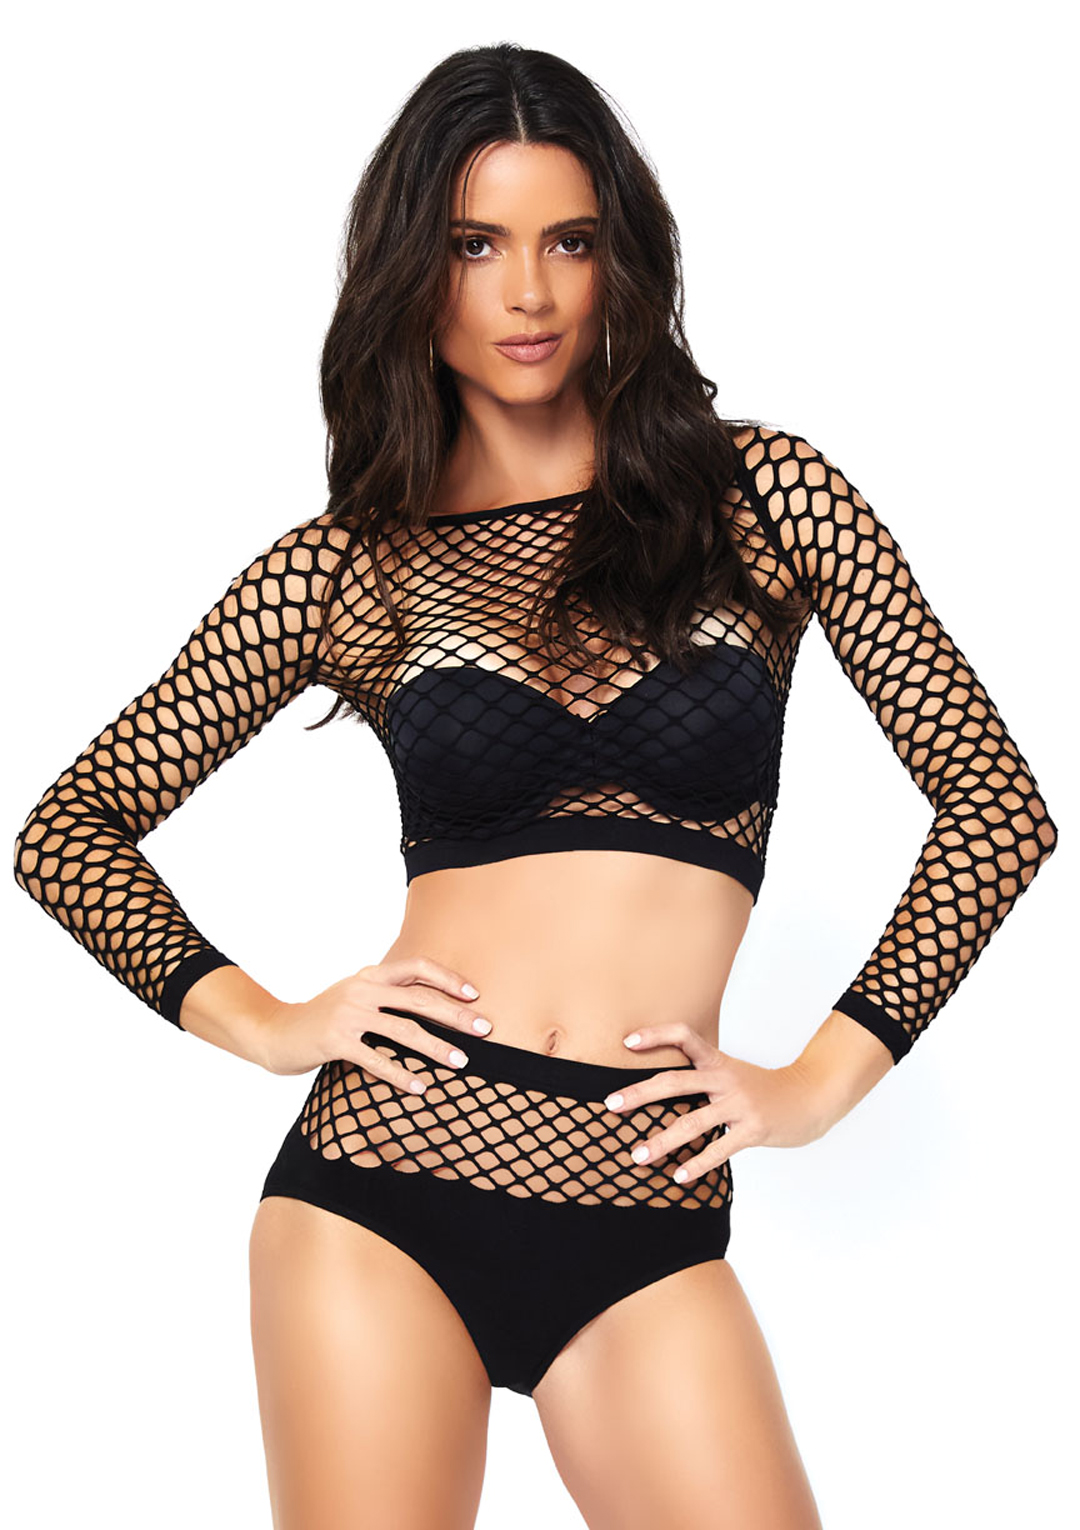 Industrial Net Long Sleeved Crop Top and High Waist Bottom